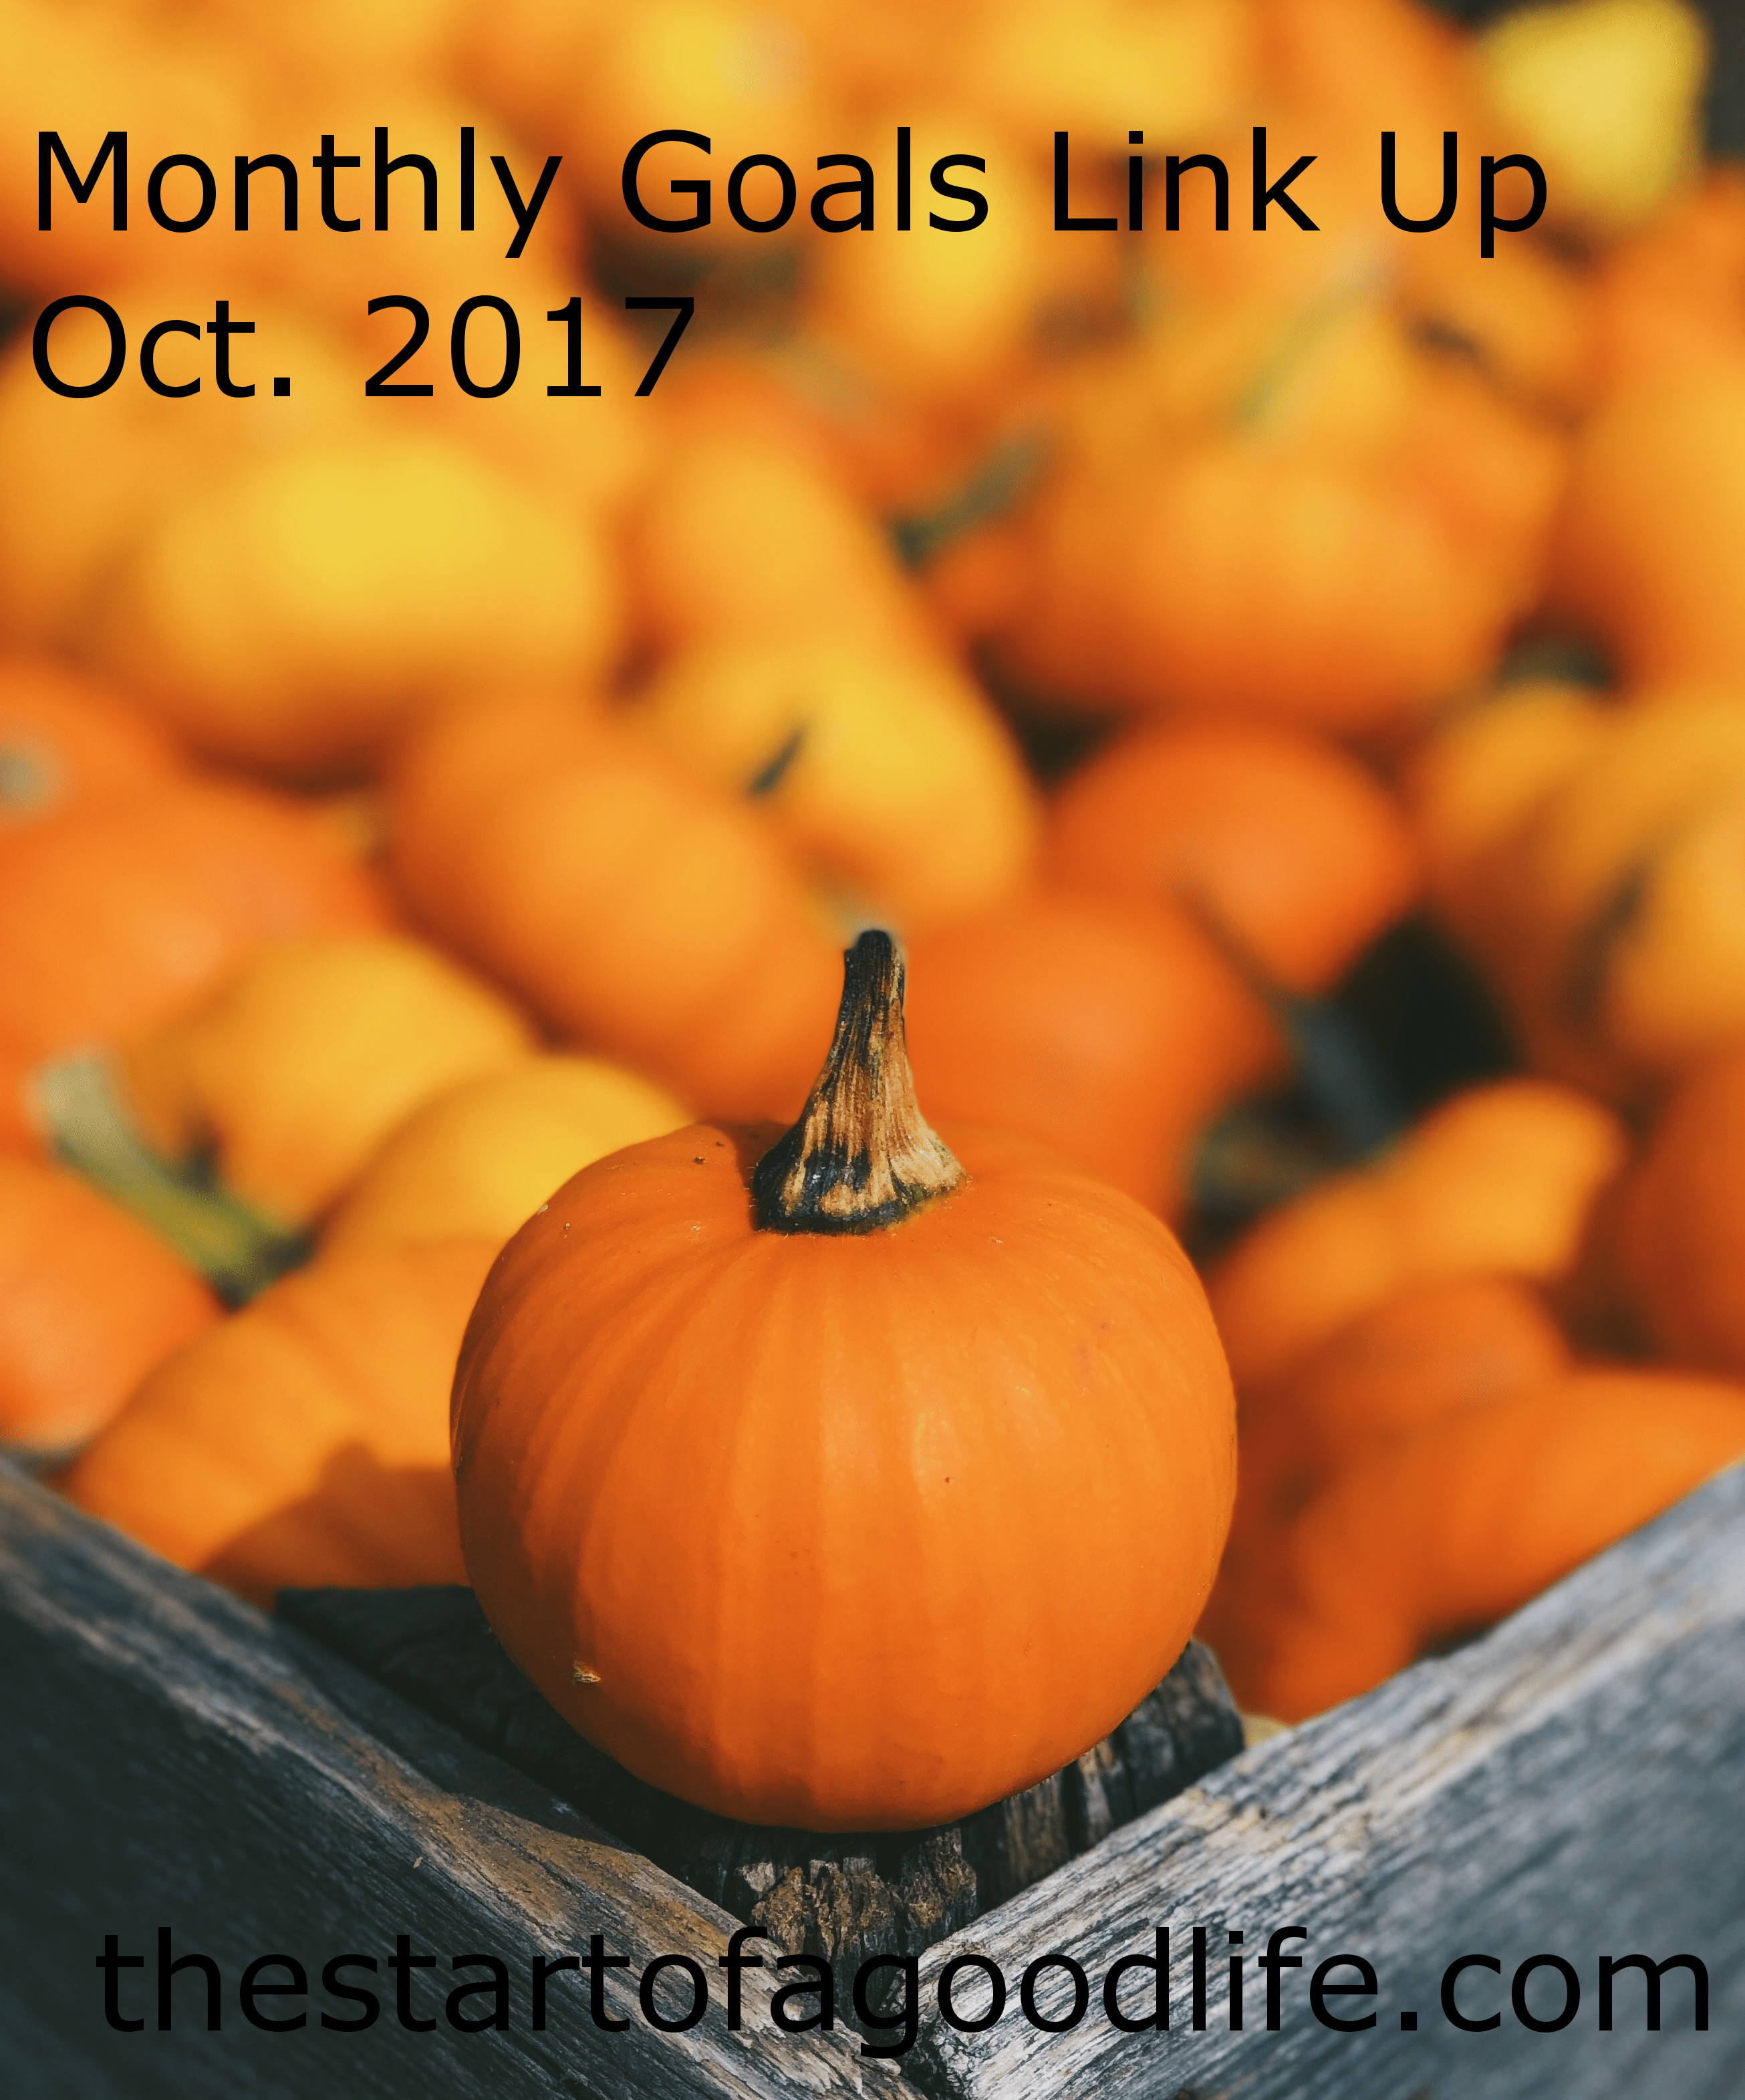 Monthly Goals Link-up : Oct. 2017